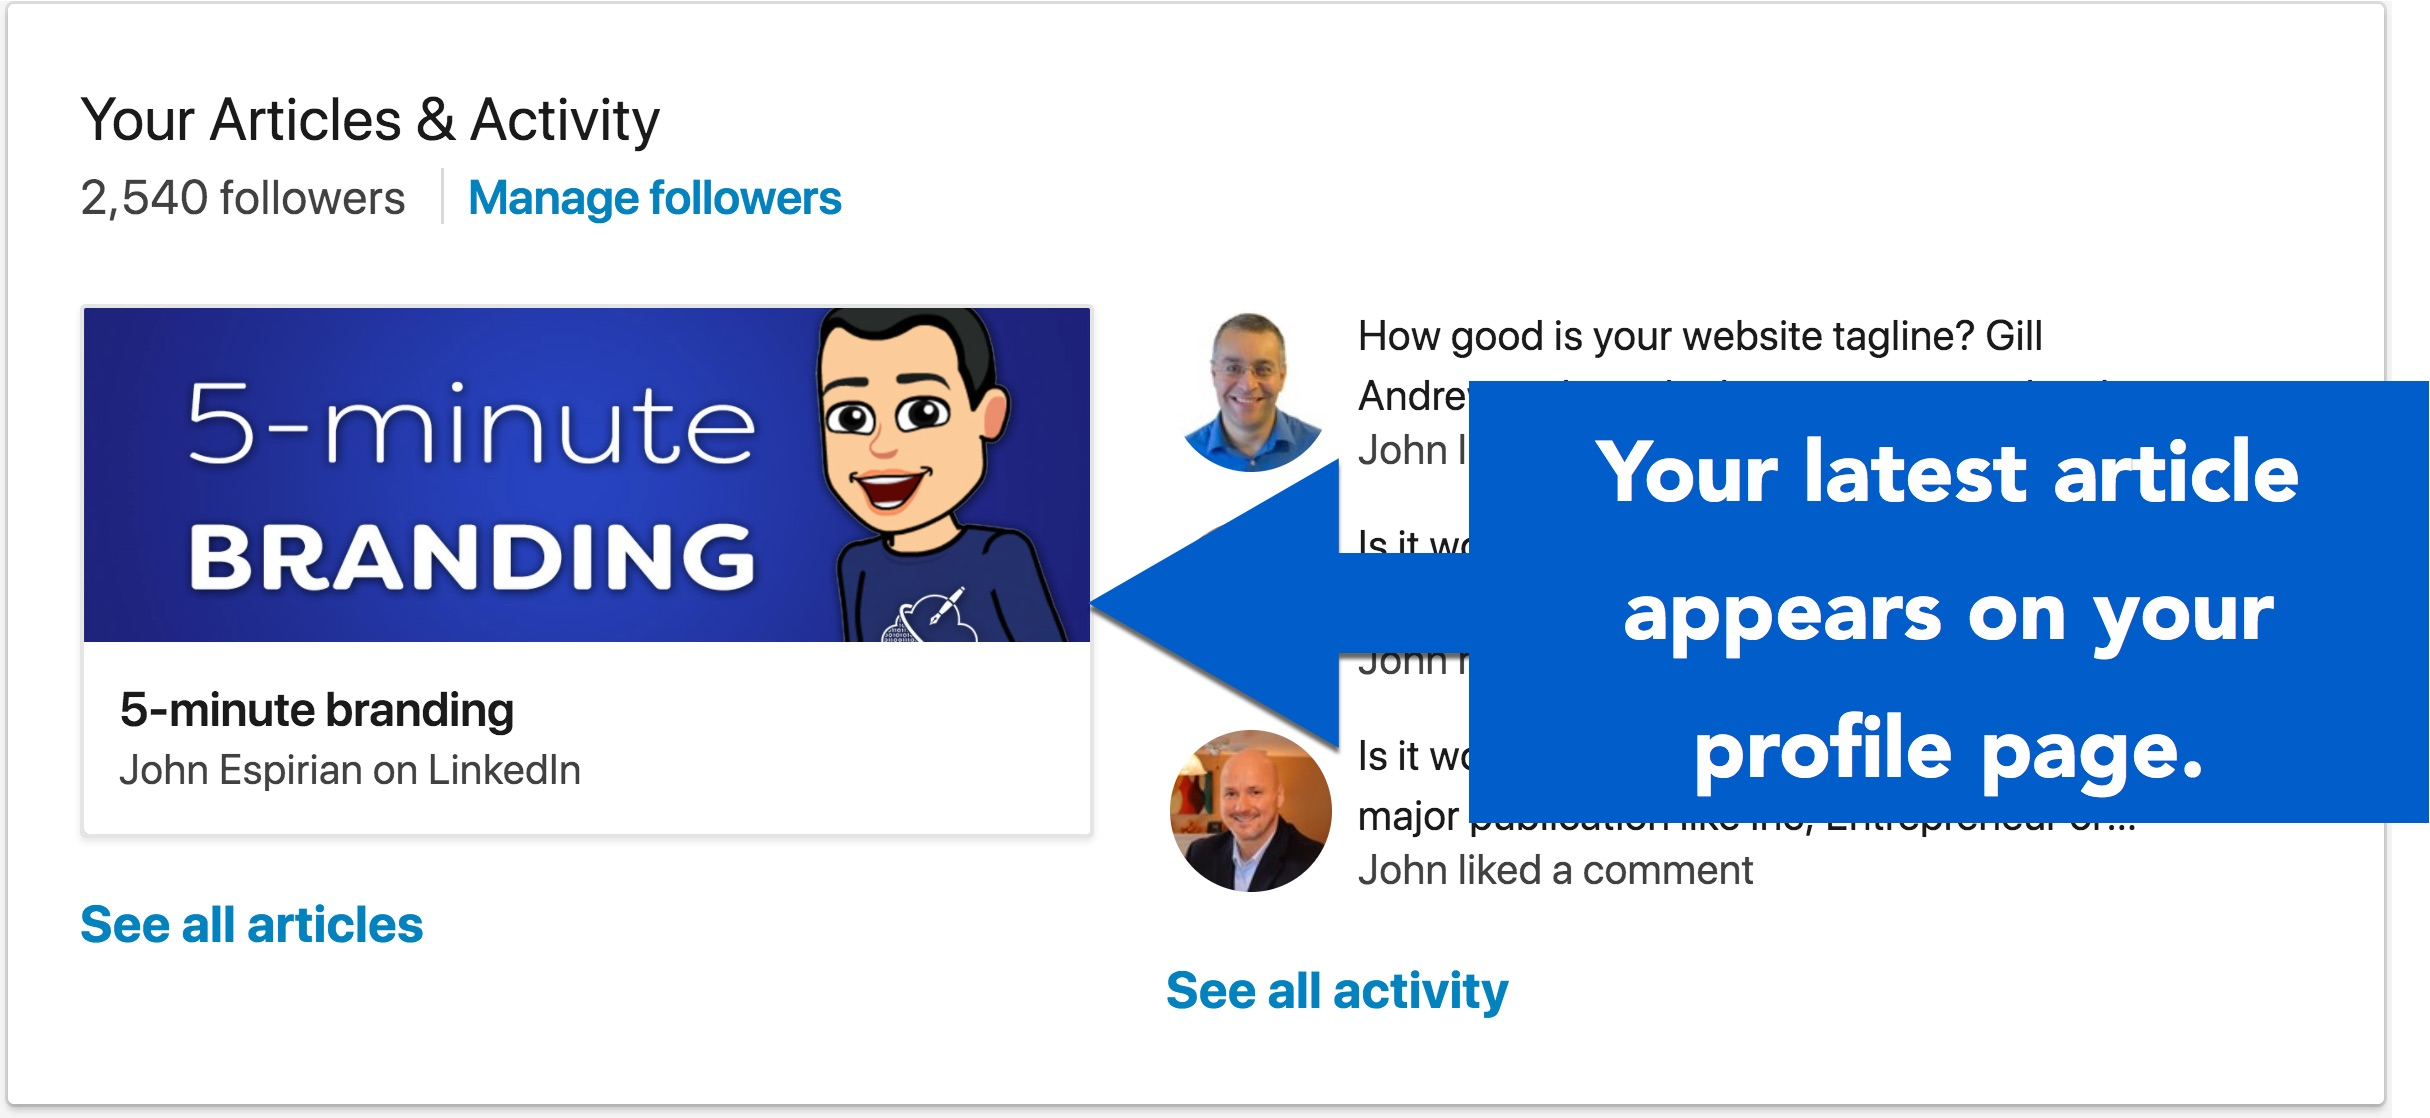 Your most recent article is shown on your LinkedIn profile